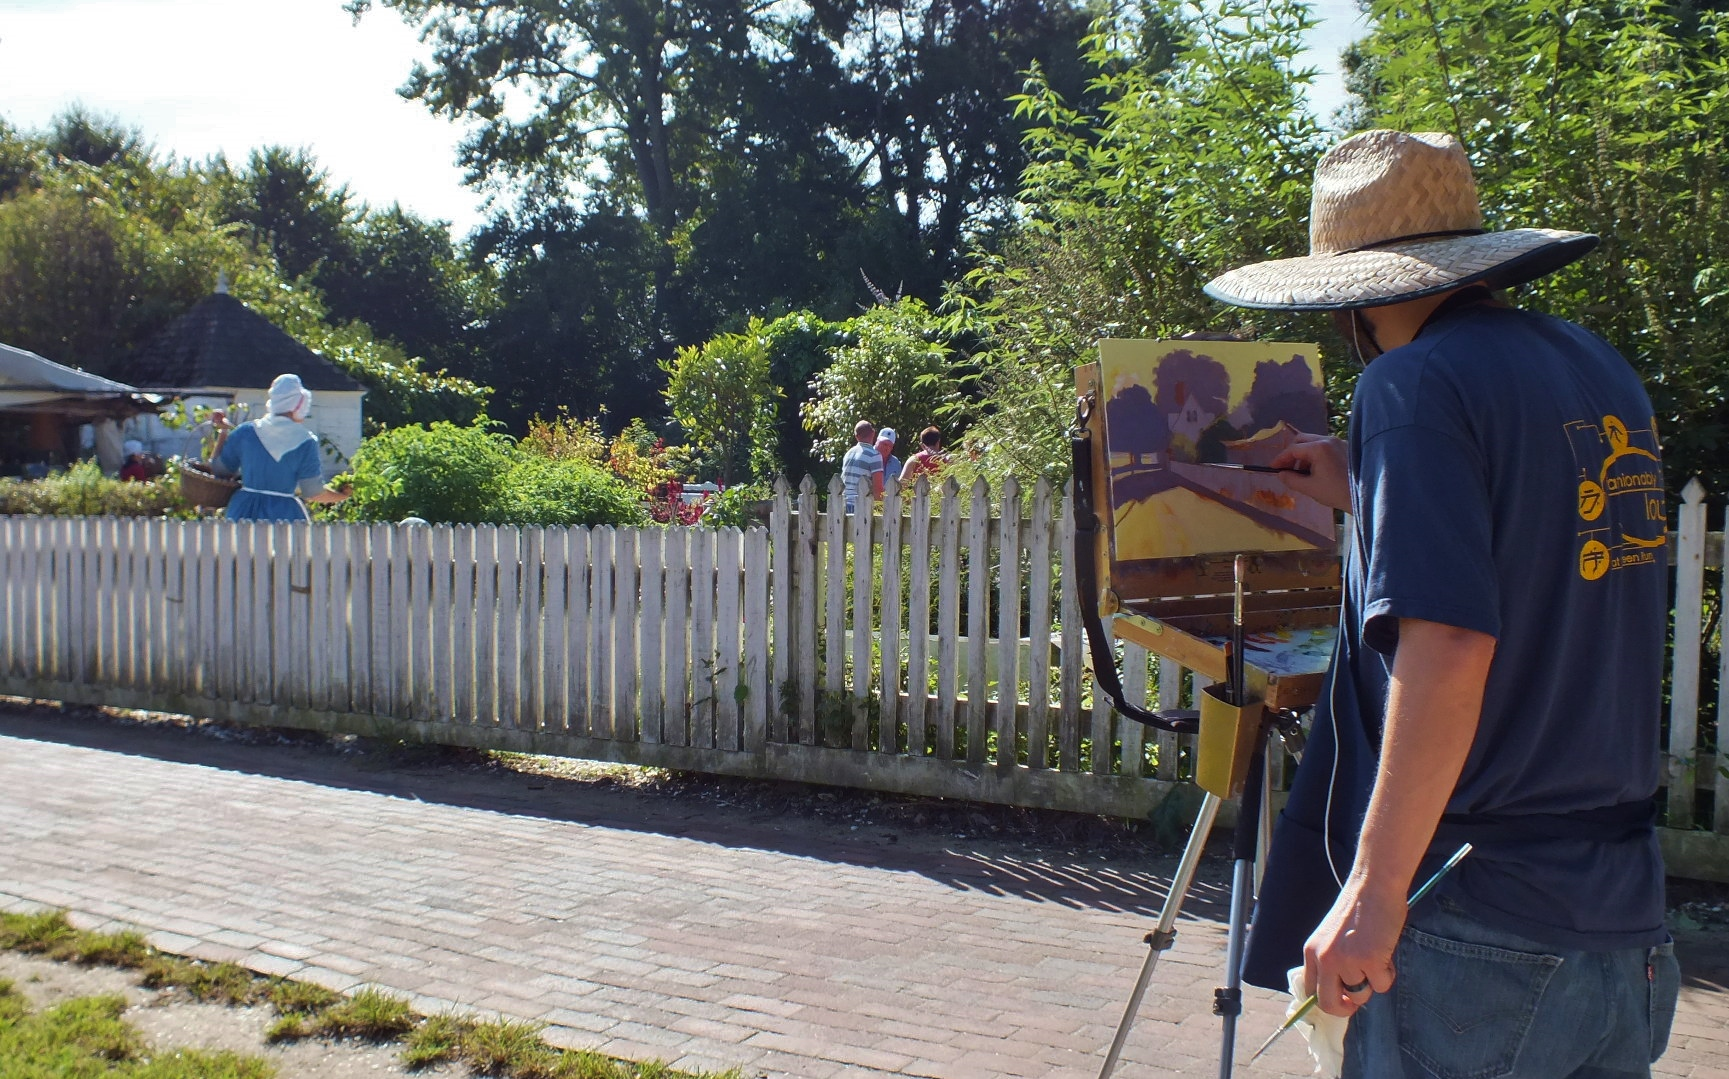 Doug Clarke paints a scene on Duke of Gloucester Street across from Bruton Parish Church (Hannah S. Ostroff/WYDaily)